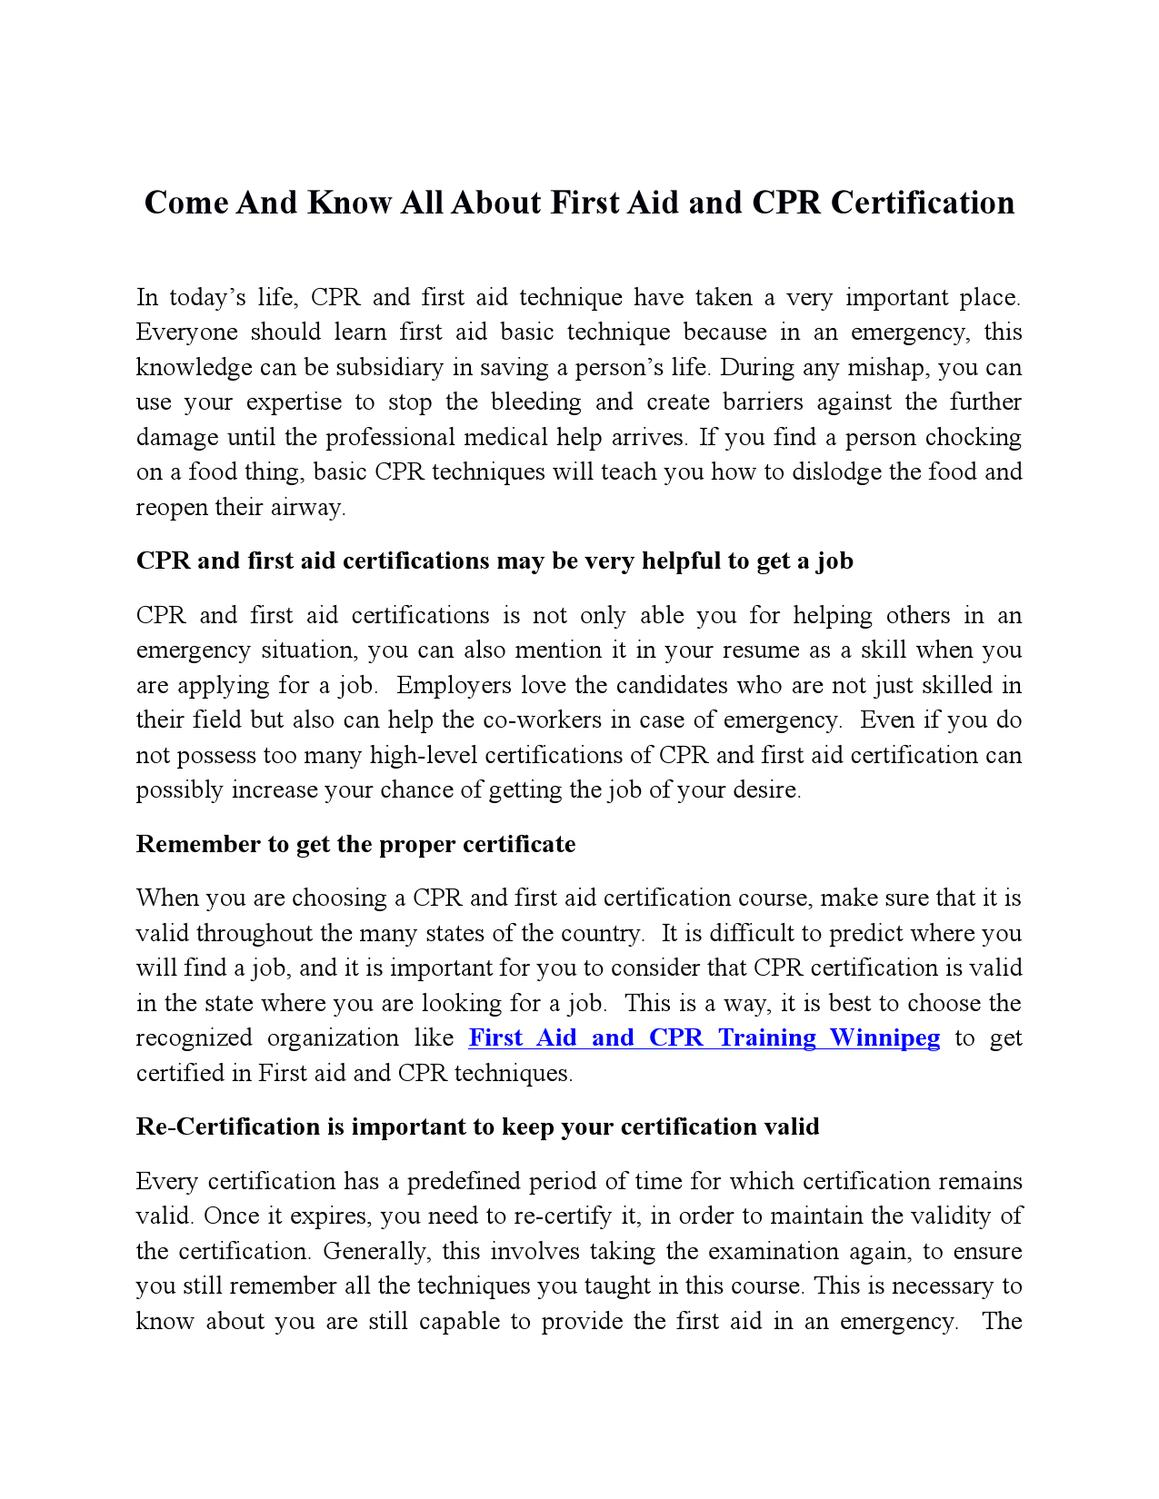 Come And Know All About First Aid And Cpr Certification By Cpr